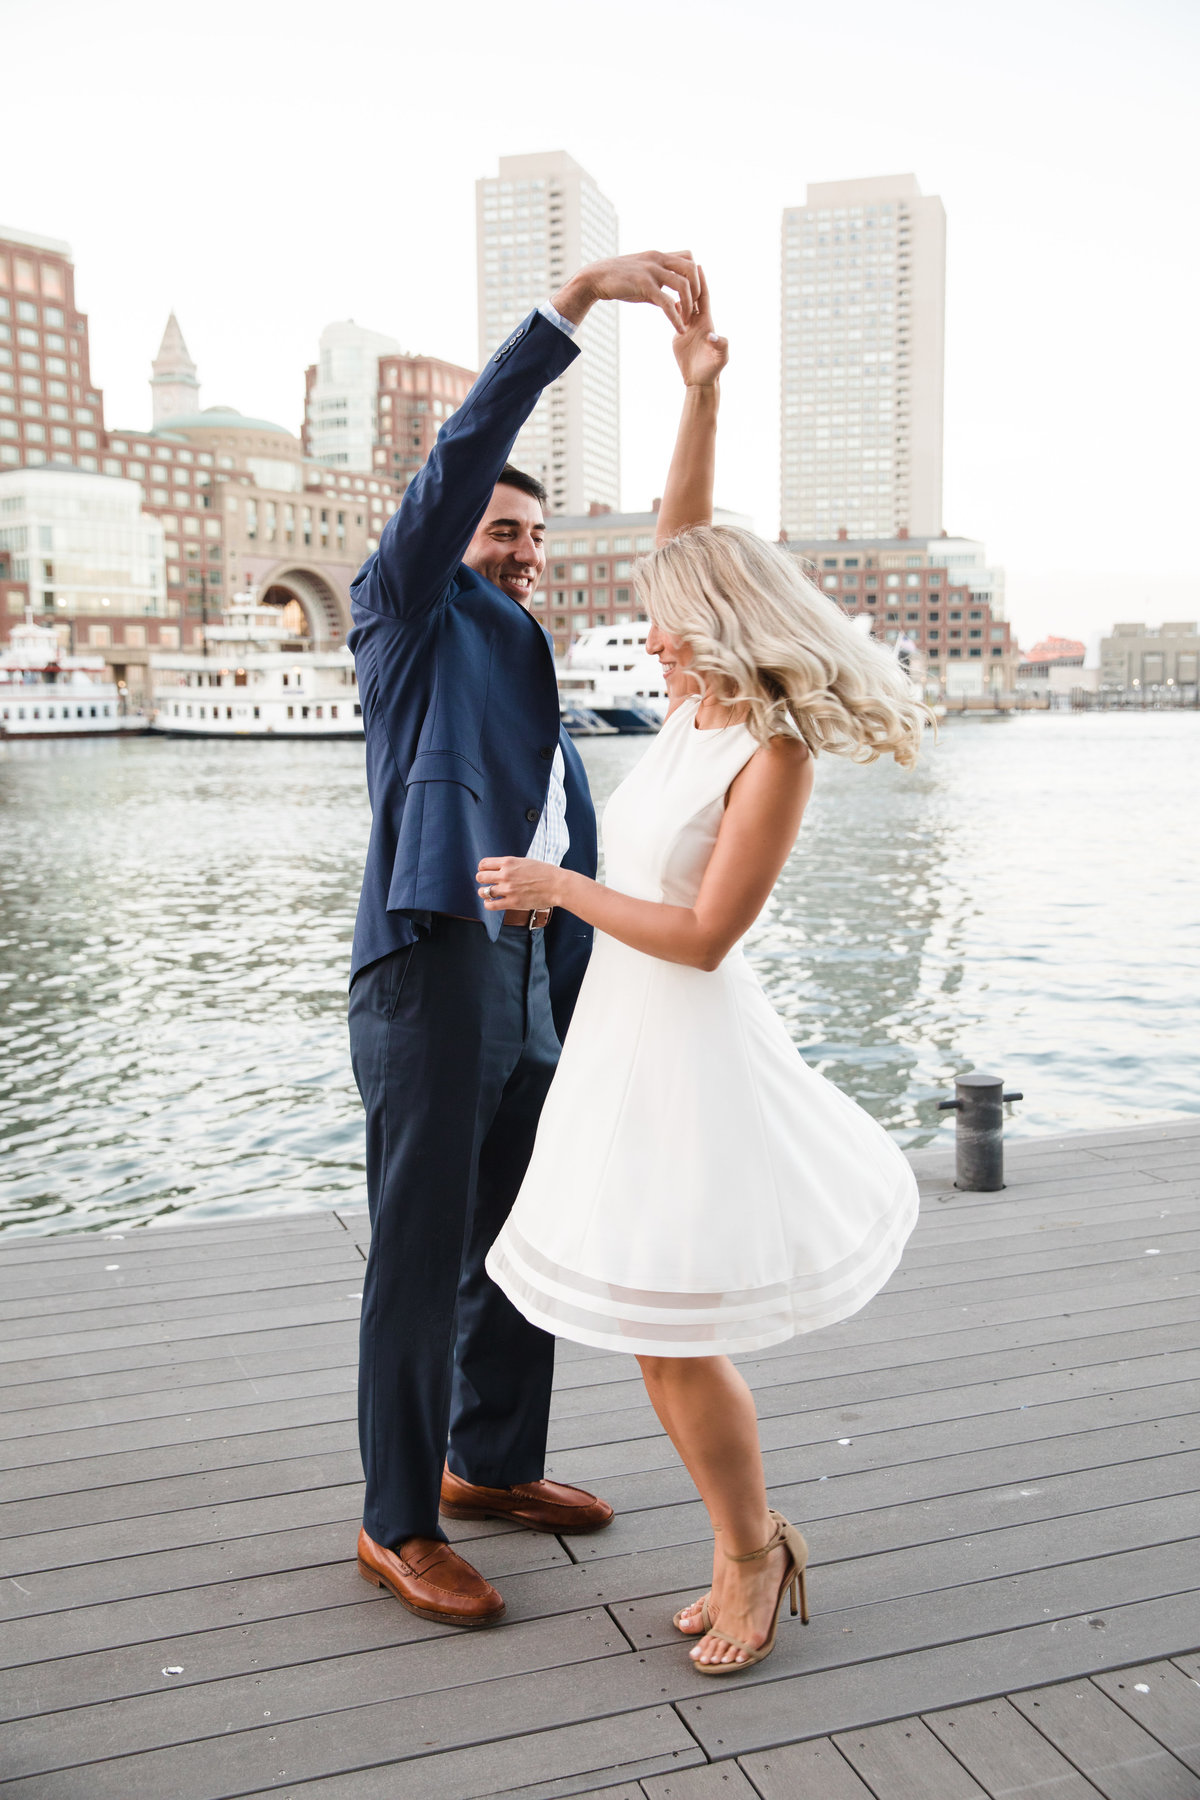 Harbor-walk-boston-engagementphotography00339copy